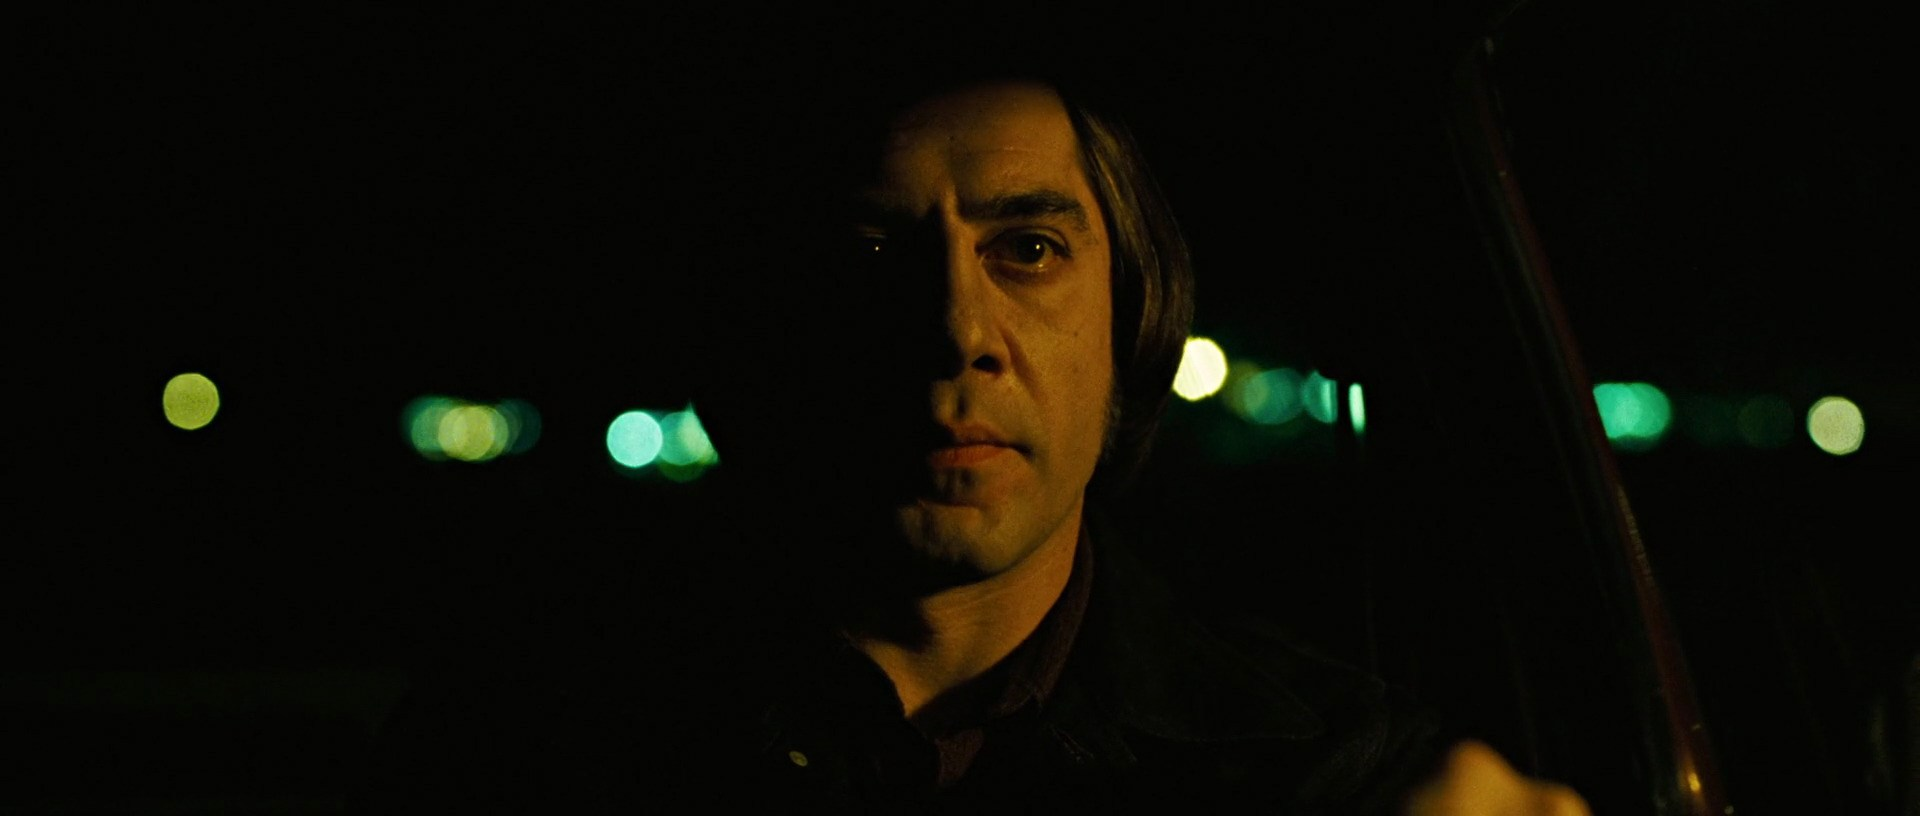 no-country-for-old-men-movie-screencaps.com-4718.jpg